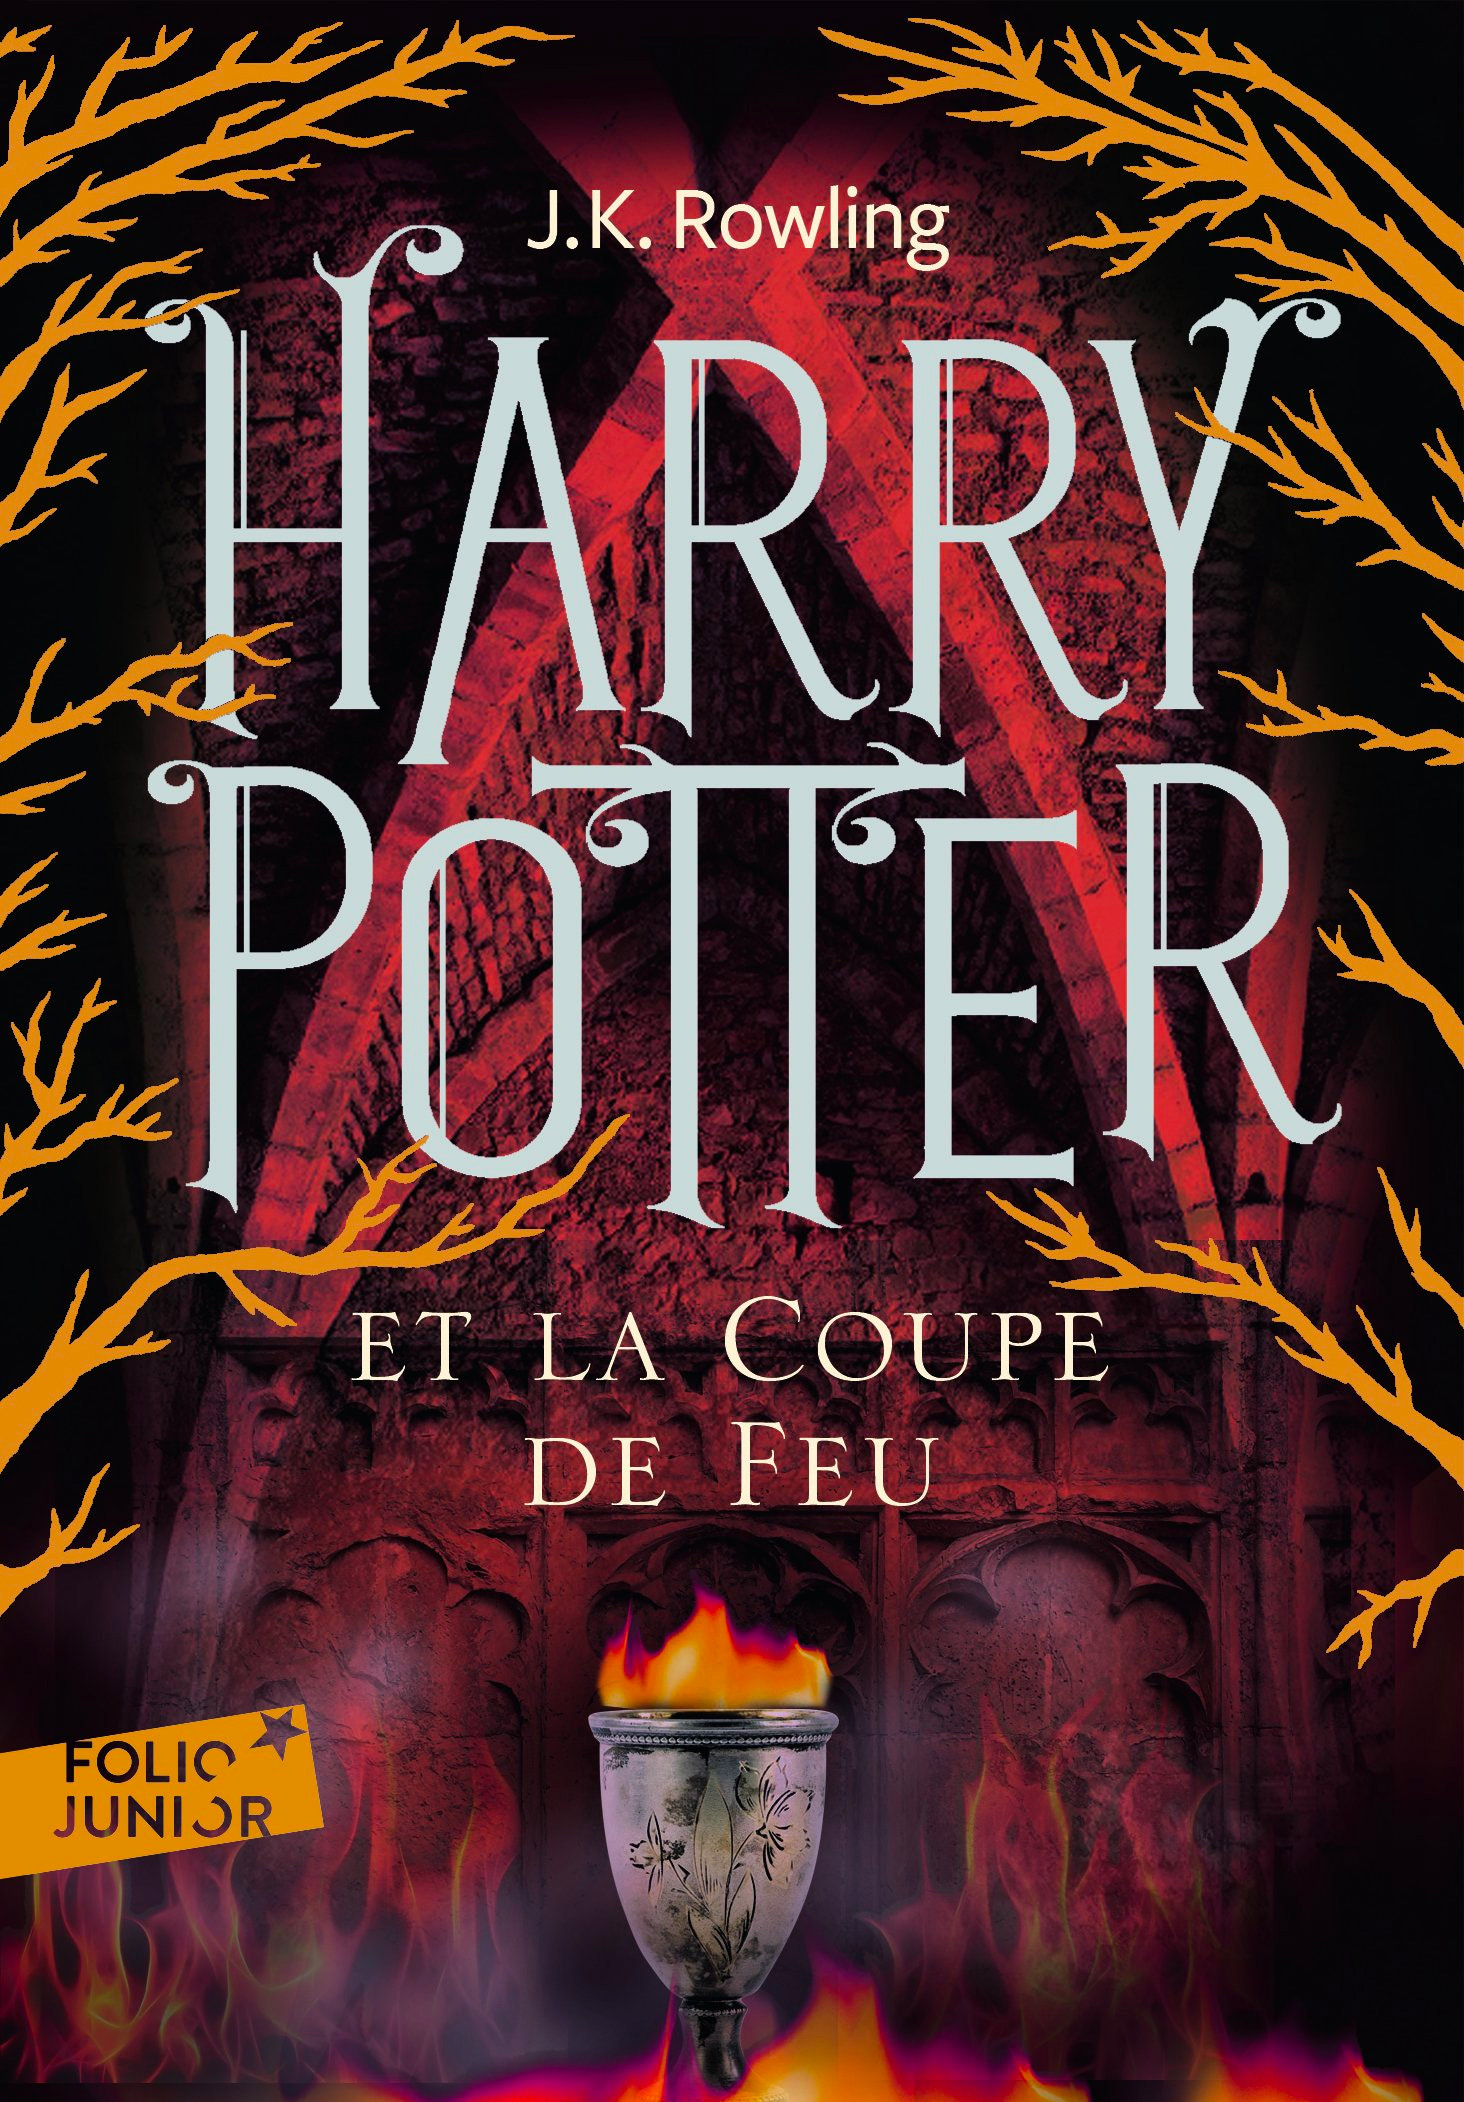 'Goblet of Fire' French adult edition